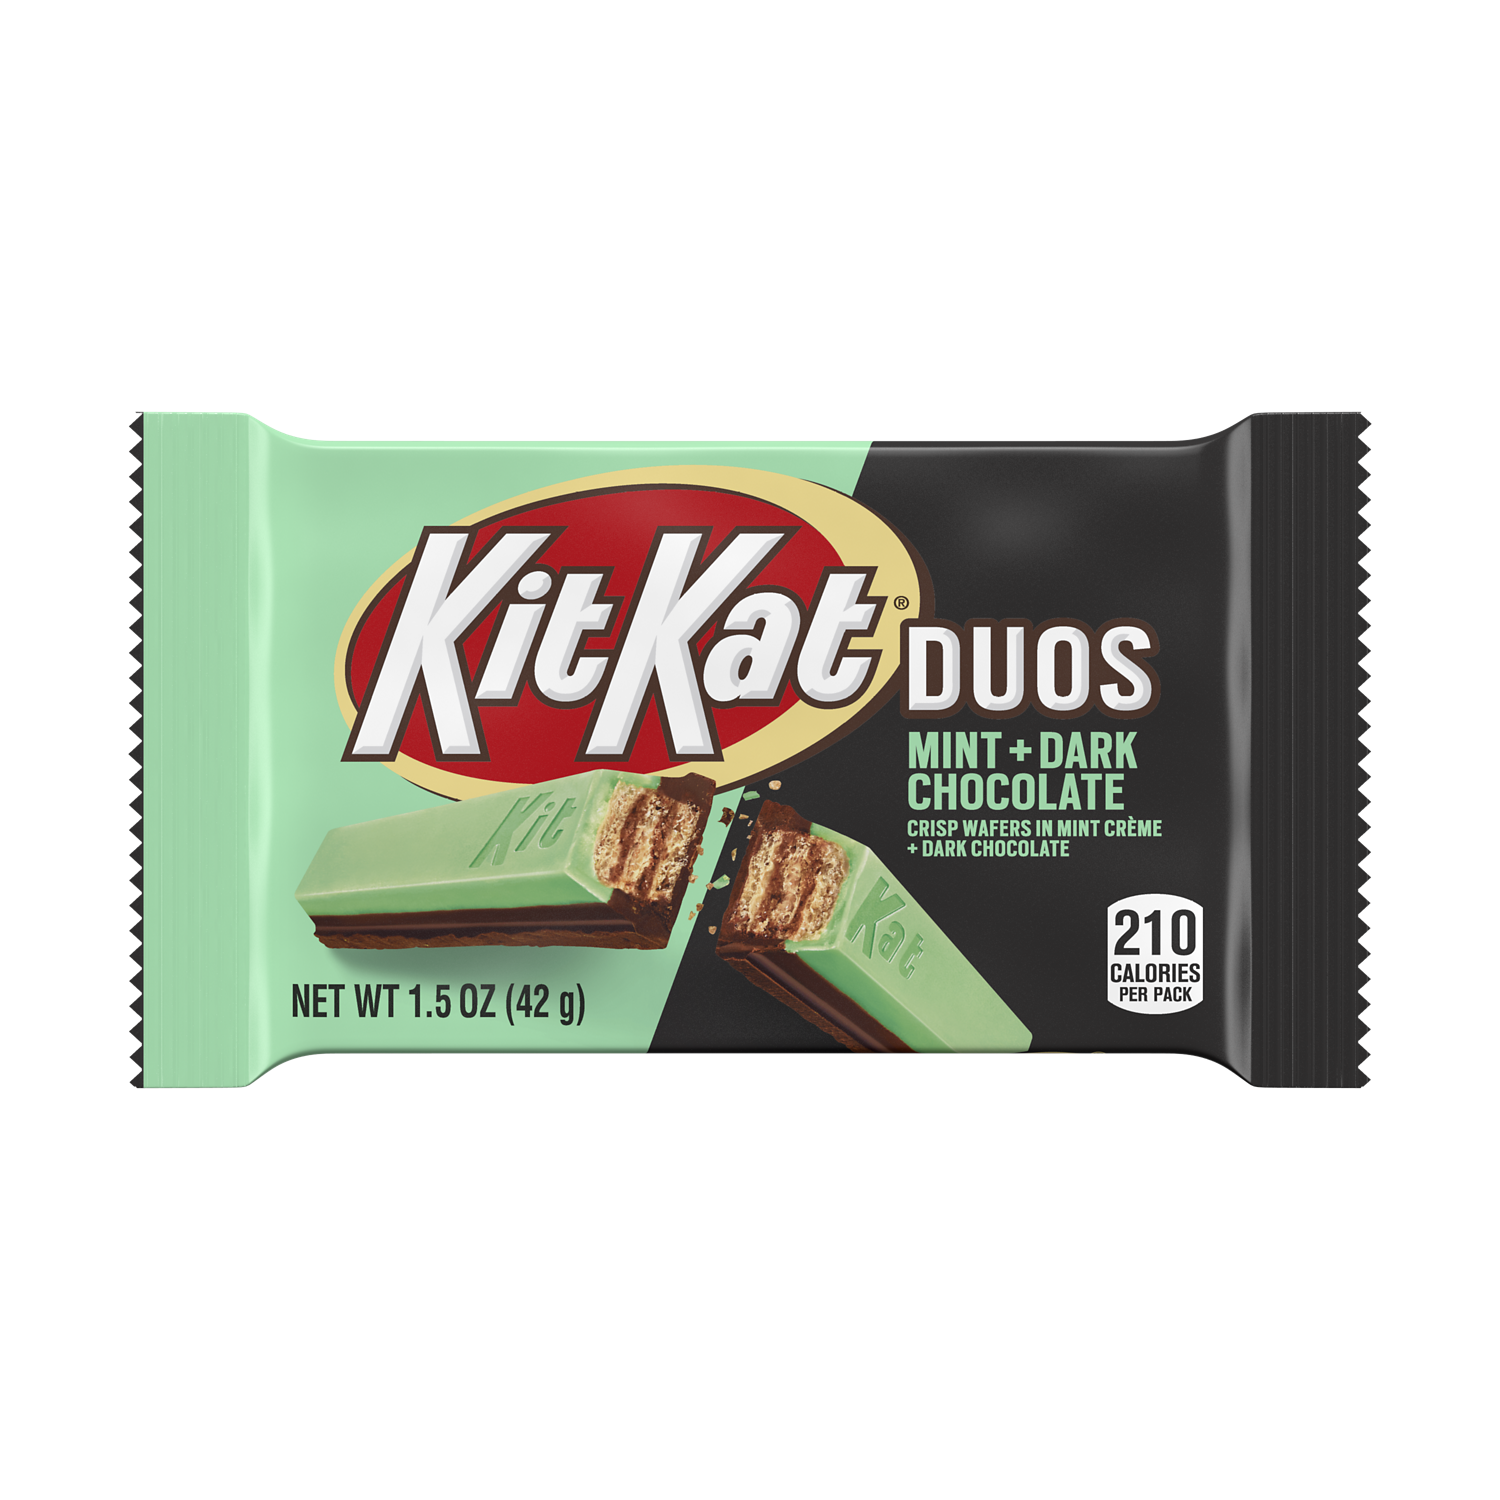 KIT KAT® DUOS Mint and Dark Chocolate Candy Bar, 1.5 oz - Front of Package